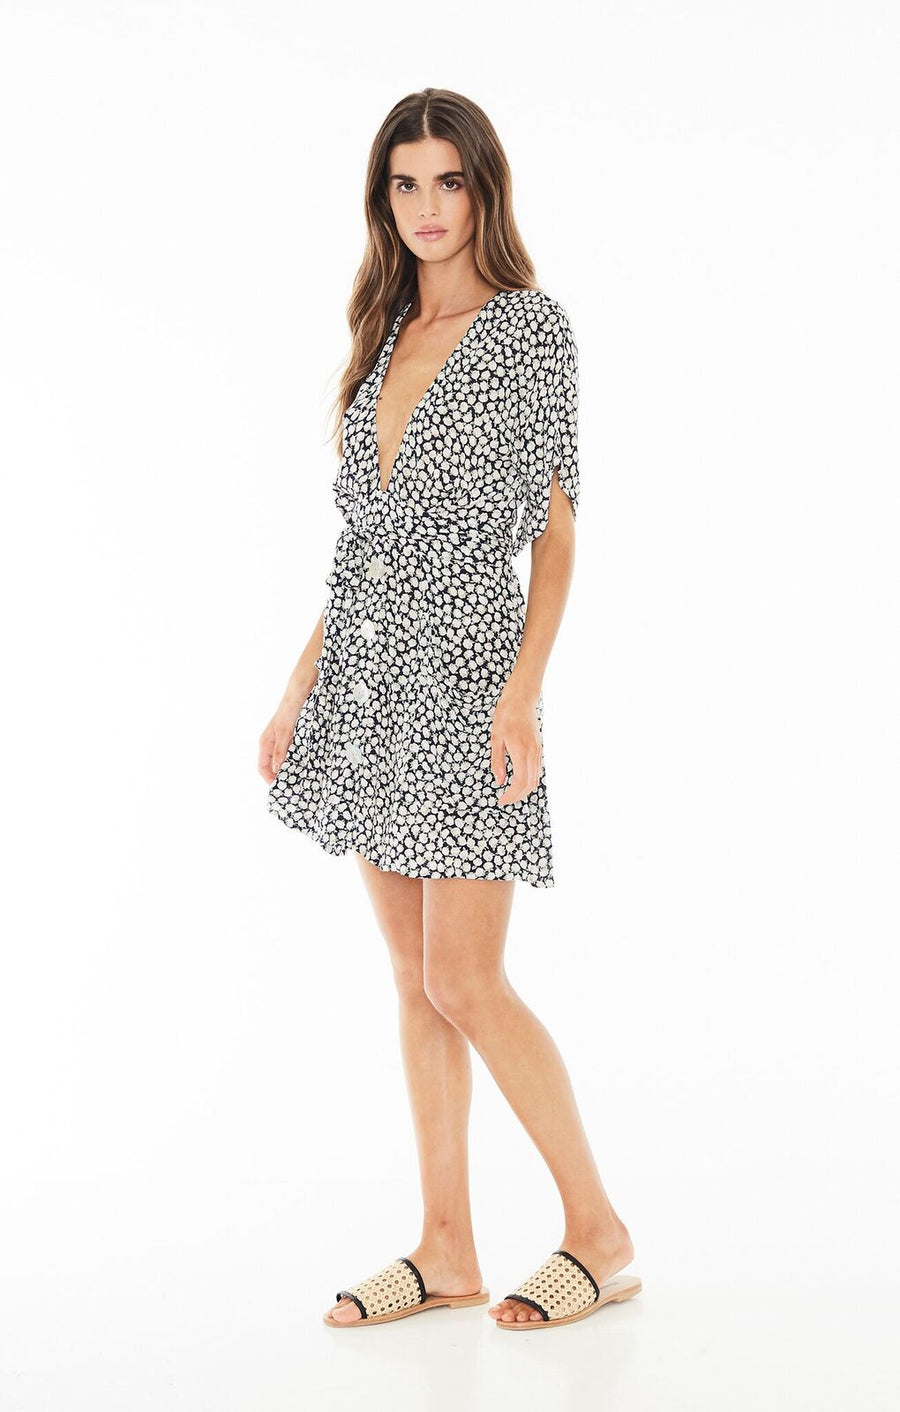 FAITHFULL THE BRAND - Umbria Dress - Azalea Print